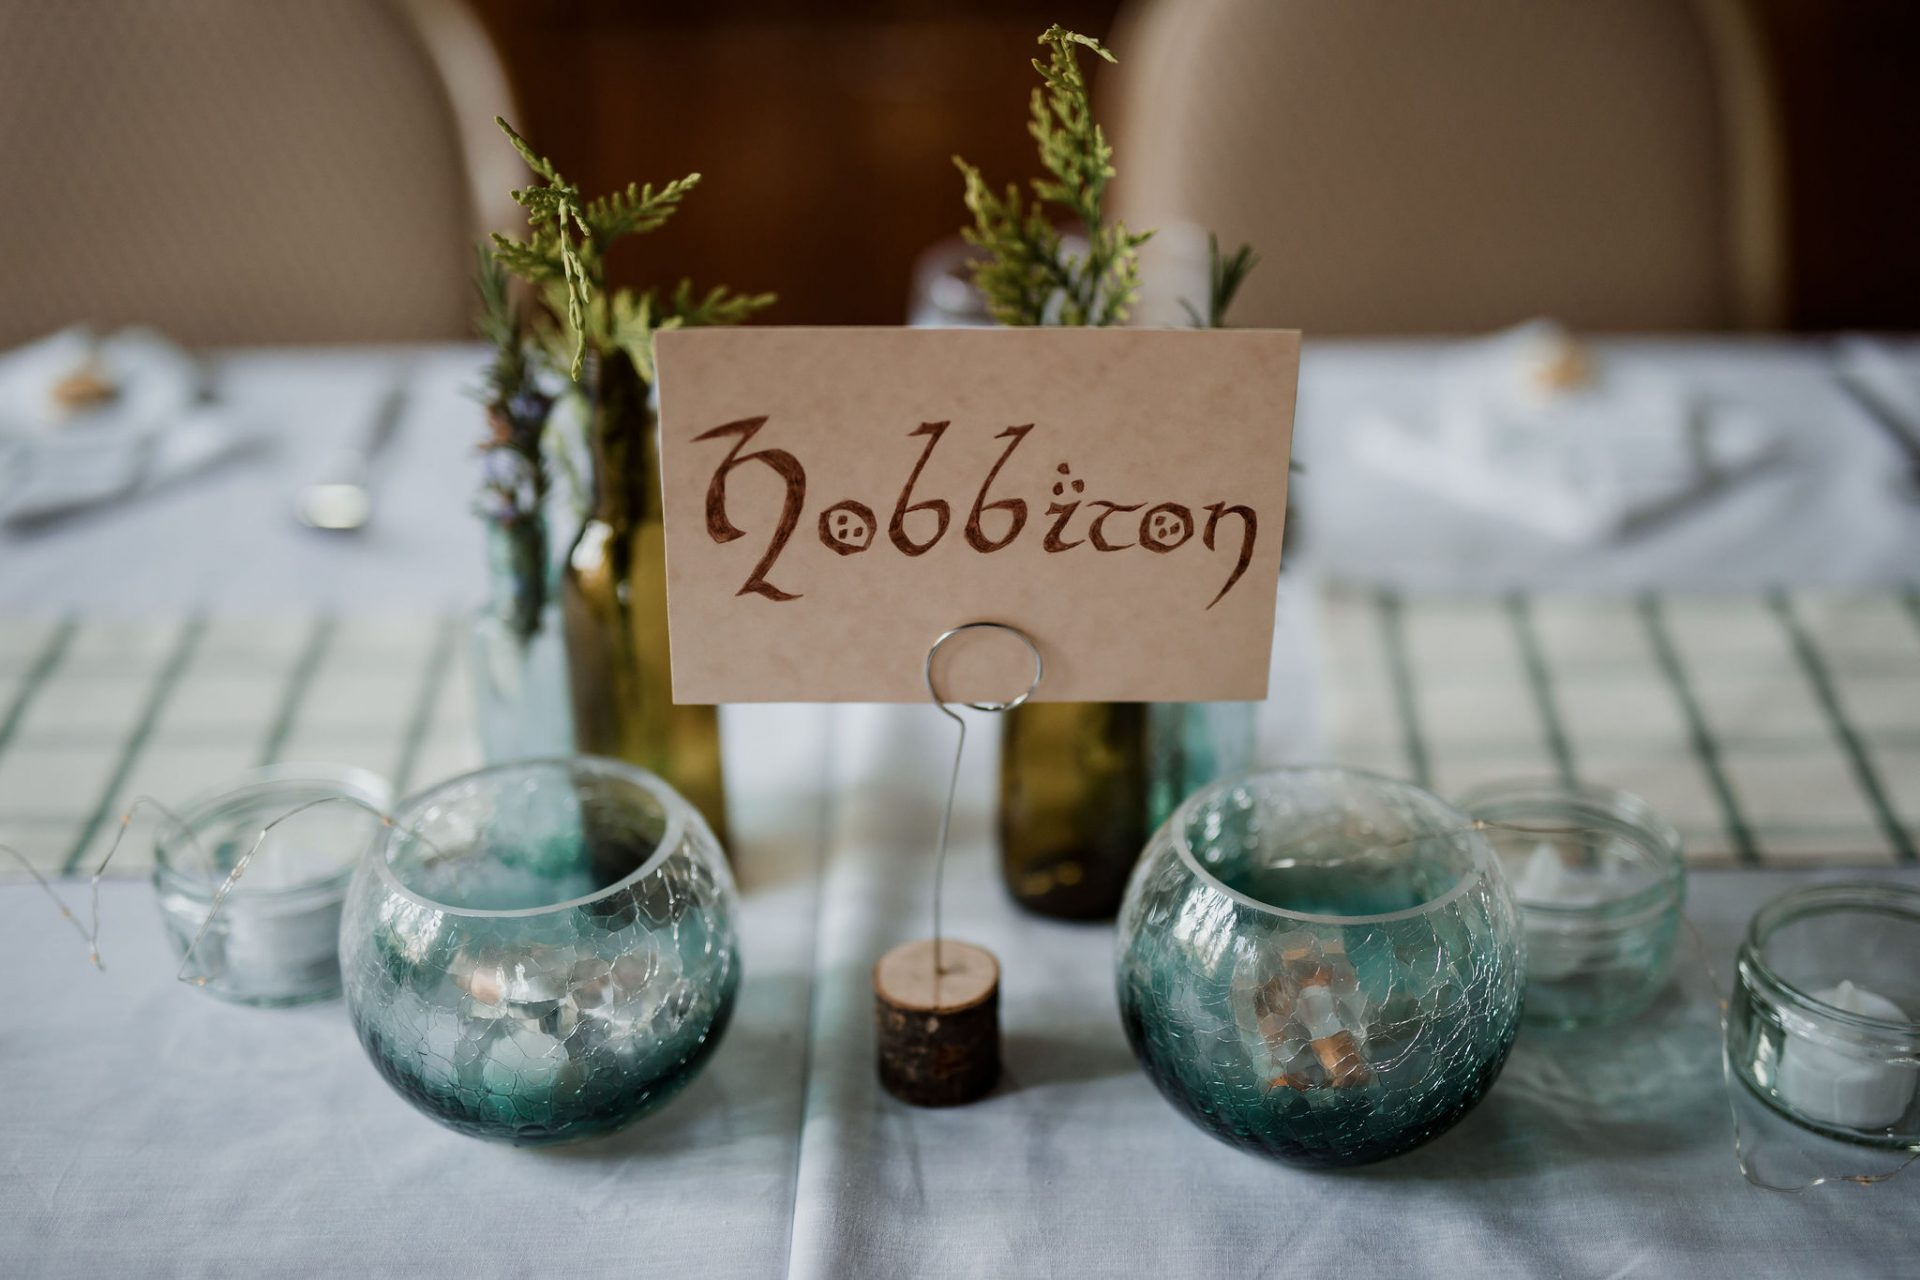 hobbiton lord of the rings wedding table decorations